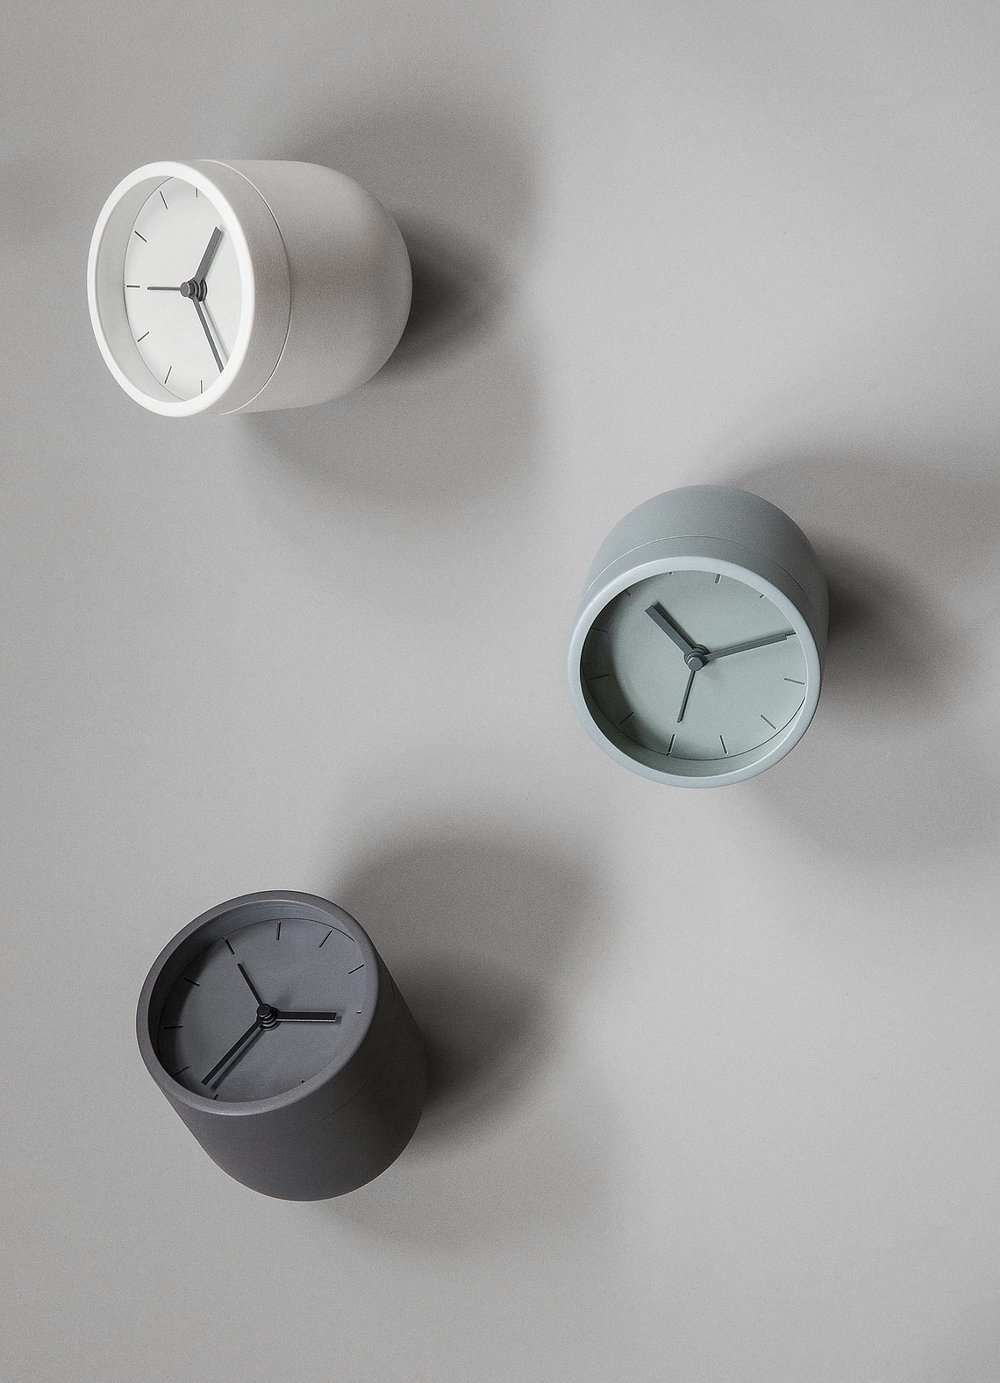 Tumbler Alarm Clock designed by Norm Architects and Menu